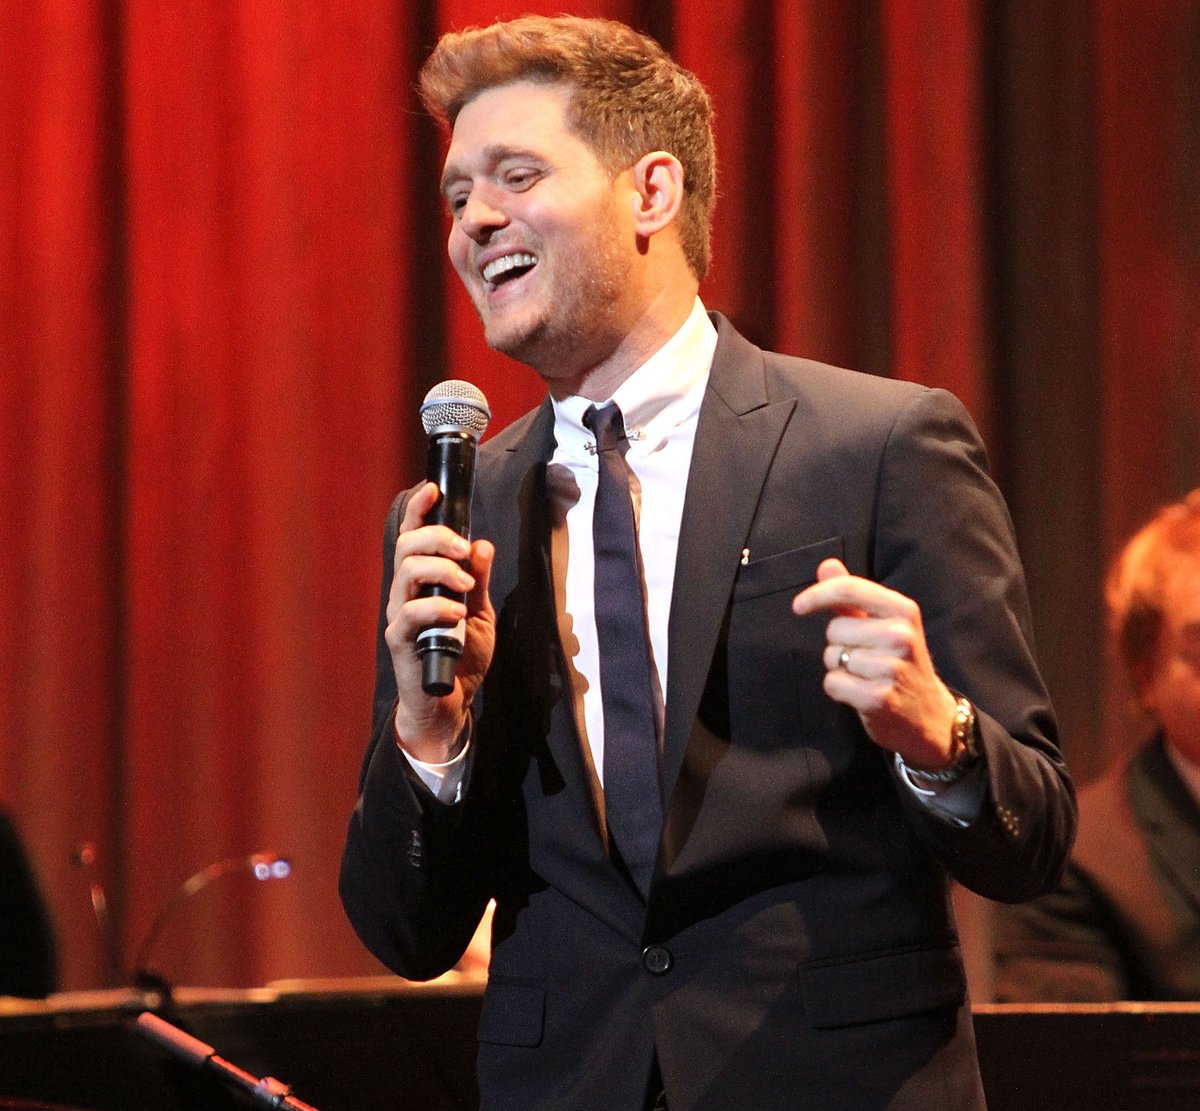 """People need a tent in the rain. I'm here to take you away for a few hours, entertain you, allow you to escape, to know there can be hope and that romance is still alive and well."" - #ThursdayThoughts from GRAMMY winner @MichaelBuble: https://grm.my/2wNOjXo  ✨"